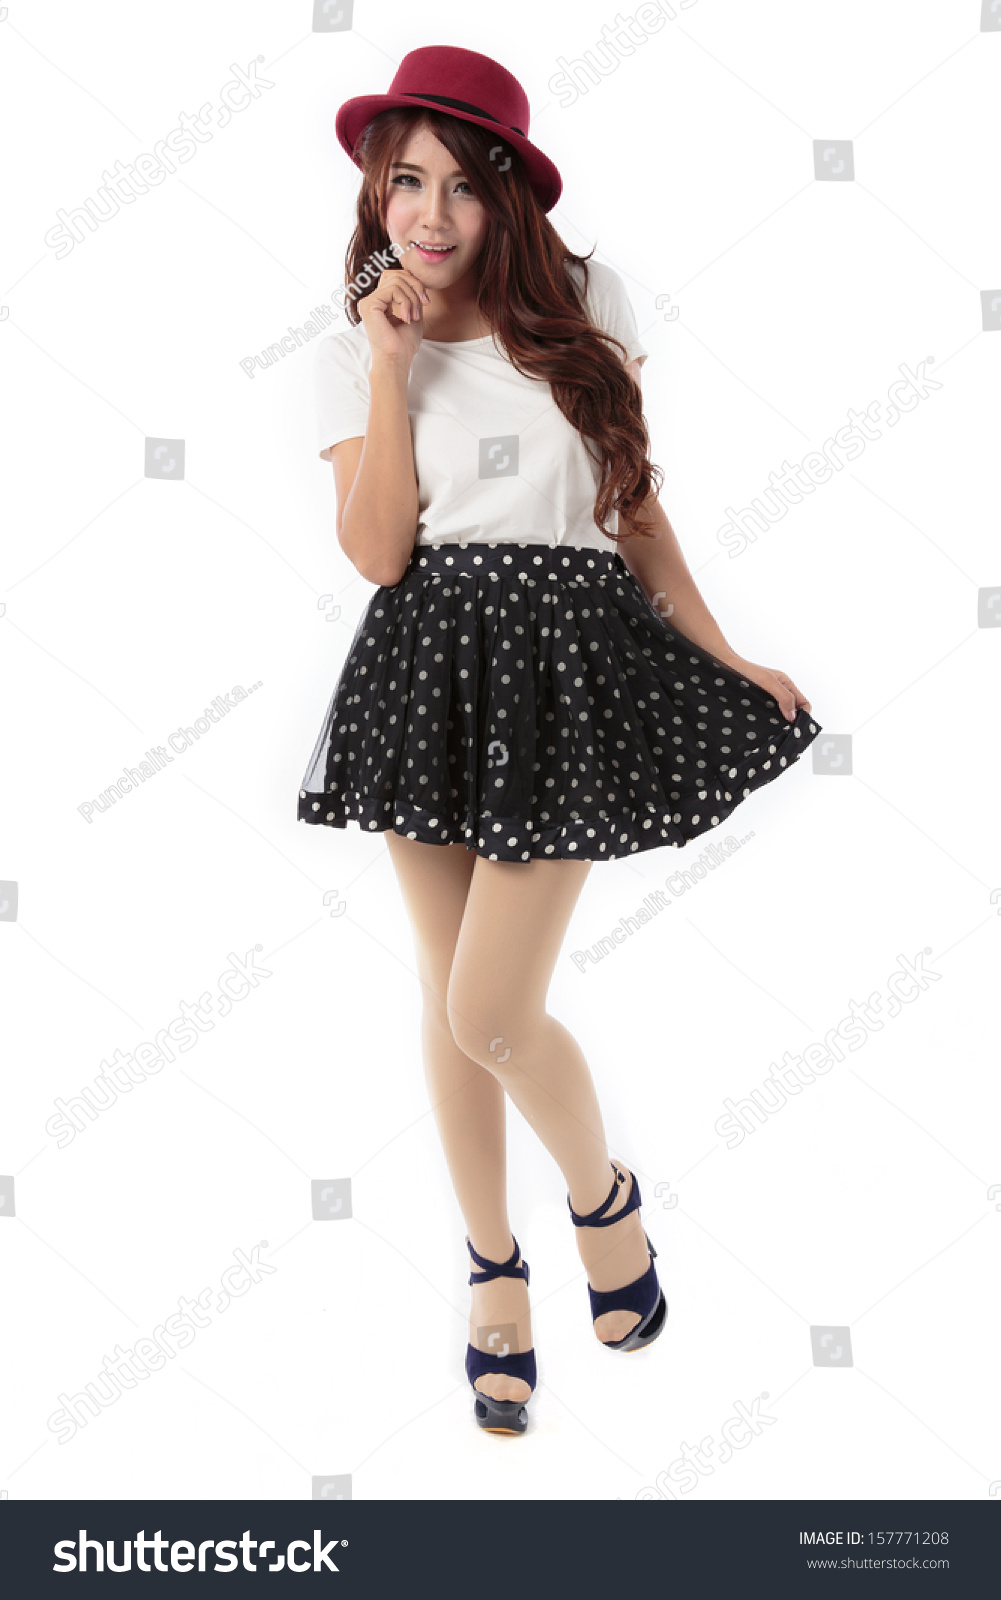 0ce4bd569d9b6b Beautiful young asian woman full body posing in dress with red hat, white  blouse and blue dotted skirt isolated on white background. - Image